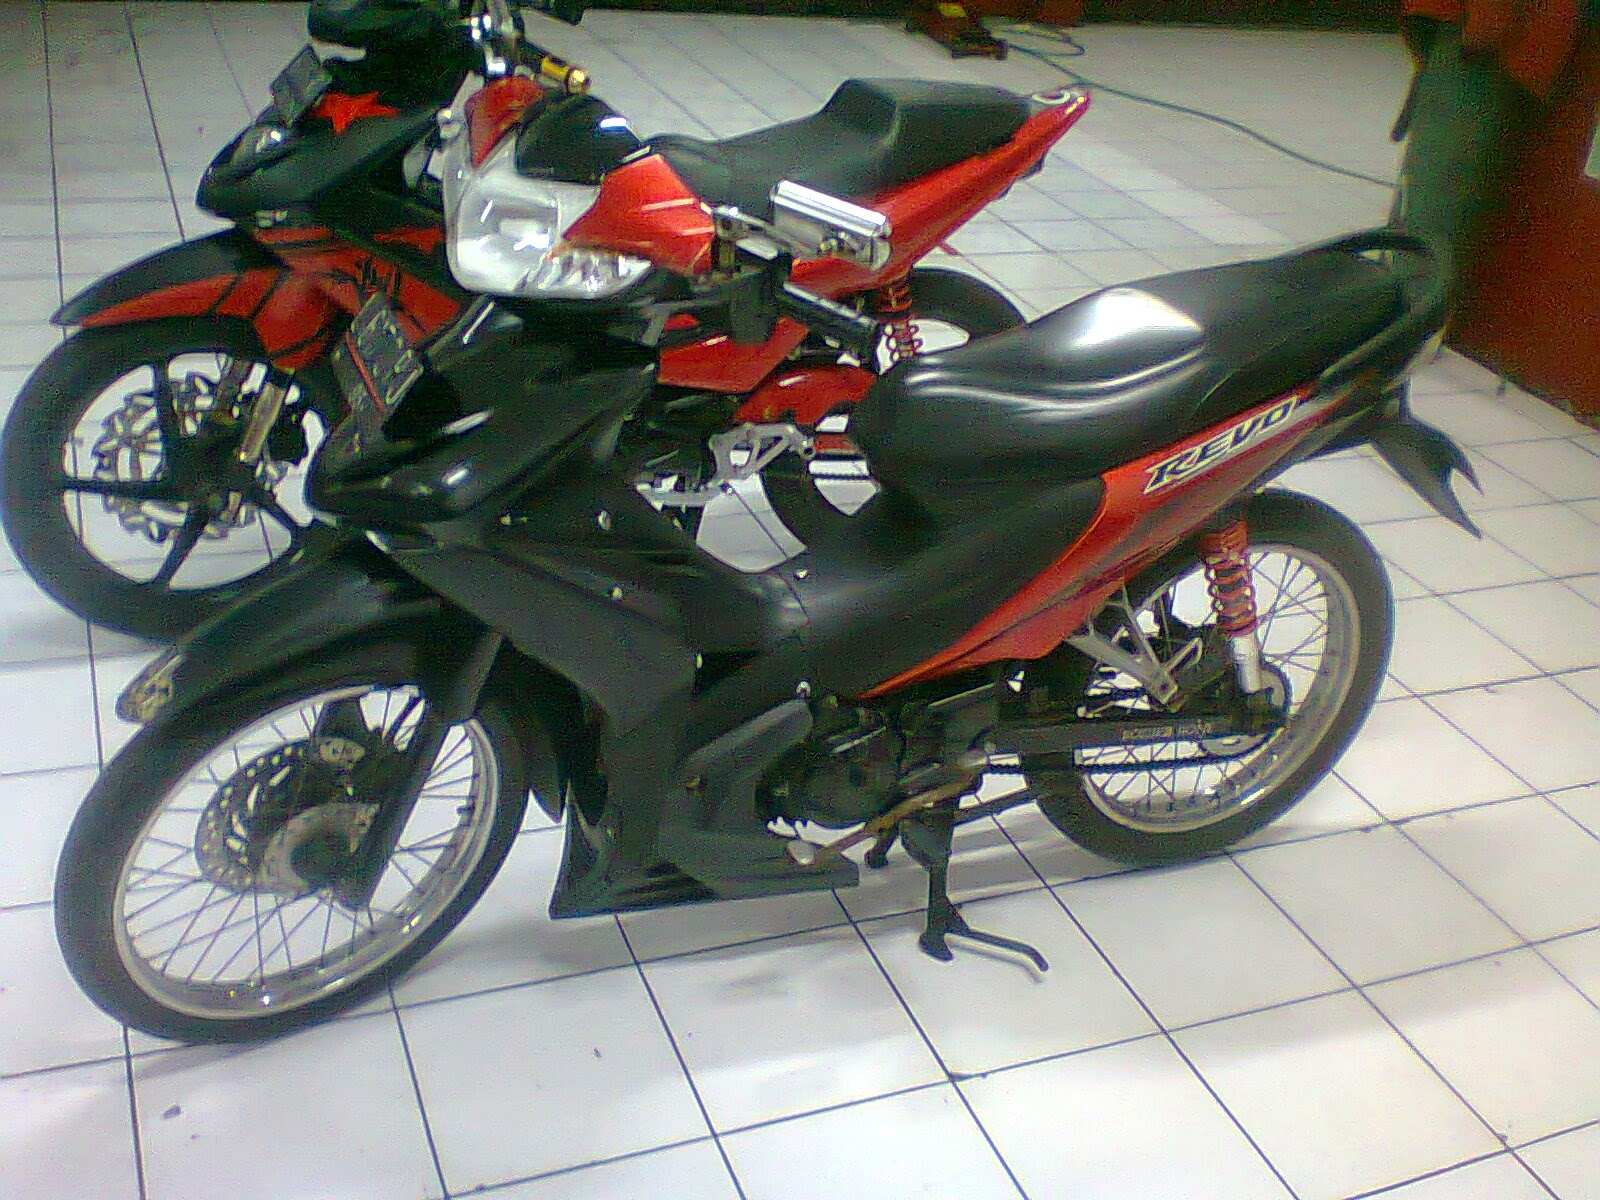 Revo Fit fi Modif Motor Honda Revo Fit